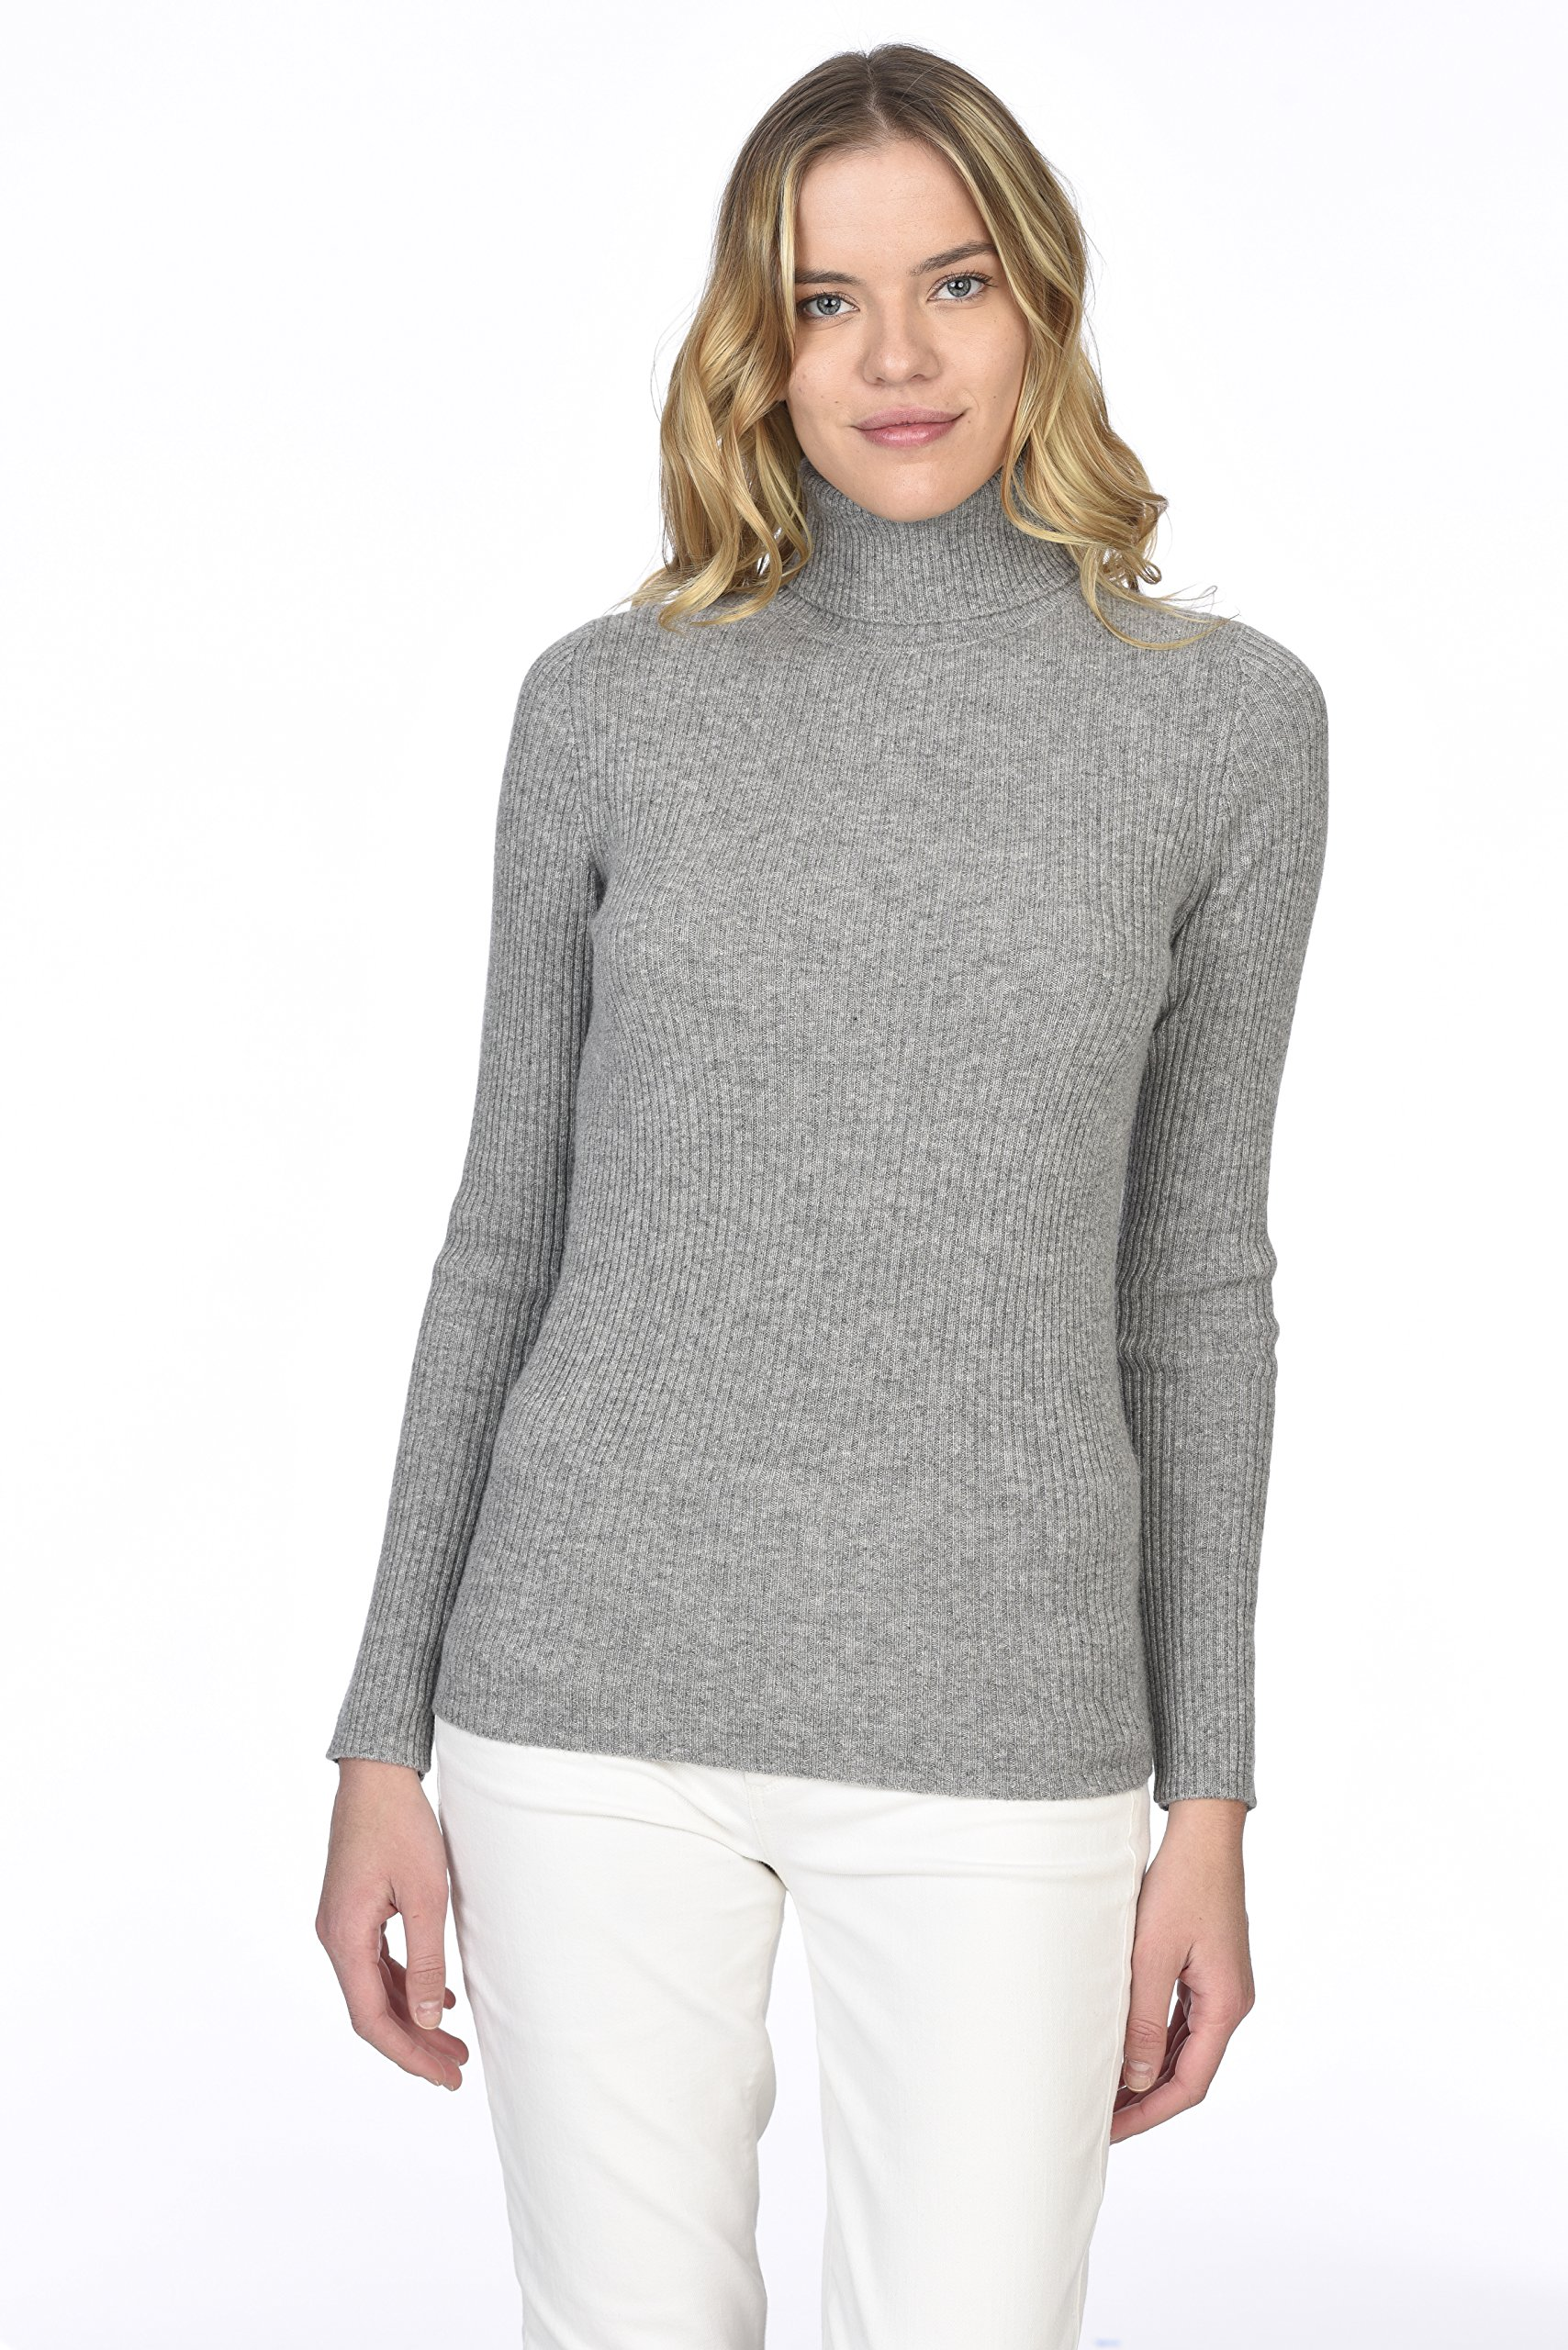 State Cashmere Women's 100% Pure Cashmere Long Sleeve Pullover Ribbed Turtleneck Sweater Heather Grey XL